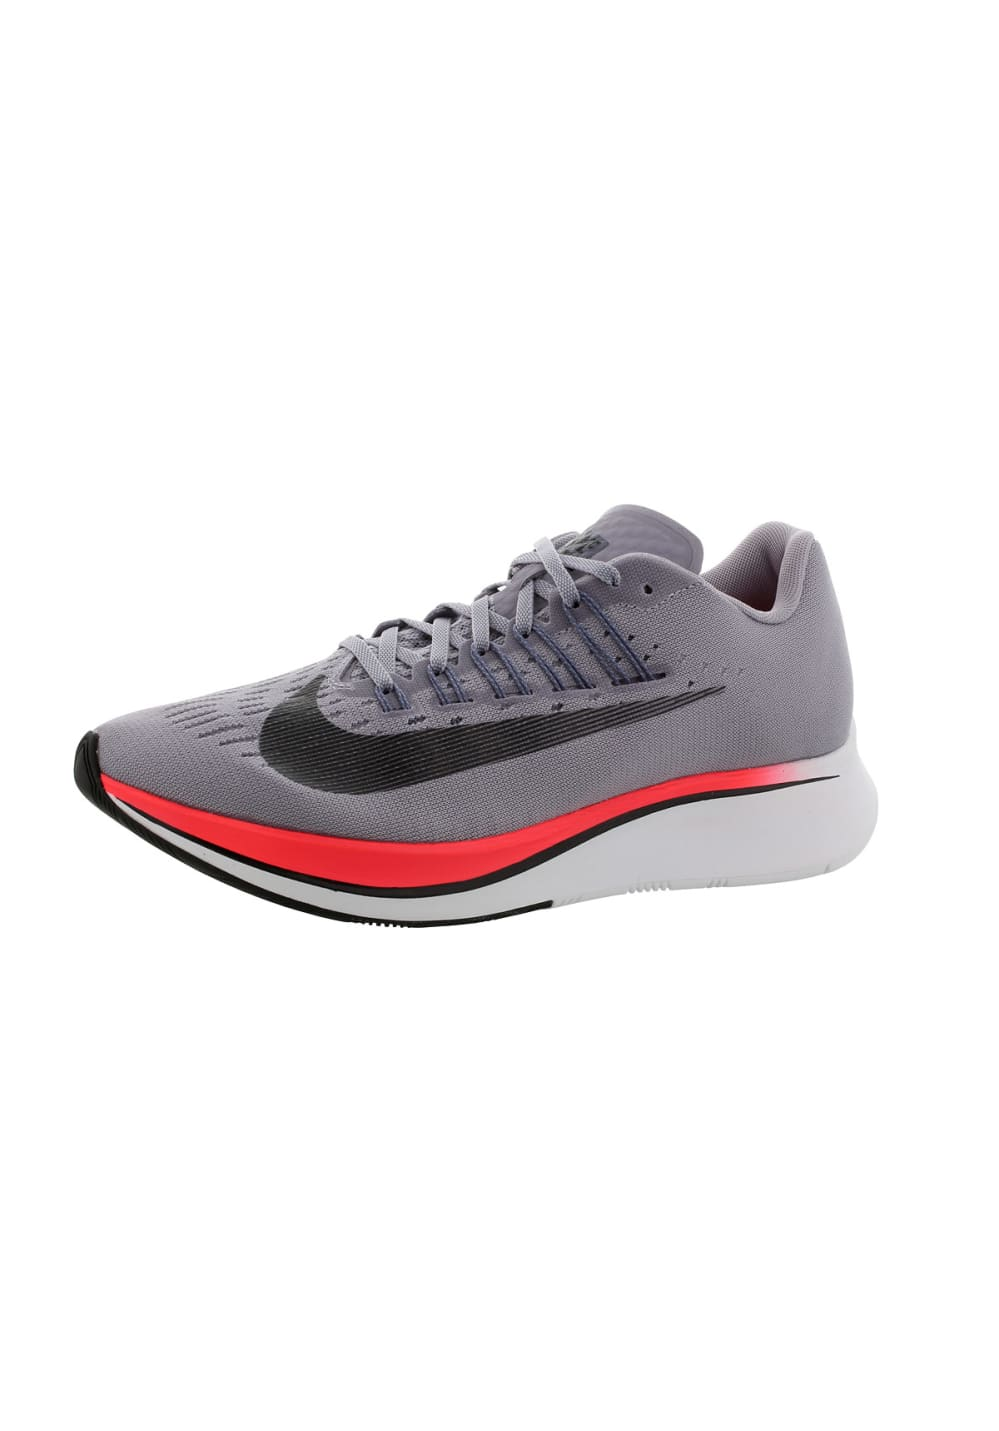 Next. -60%. Nike. Zoom Fly - Running shoes for Women 86a7bdb1a8